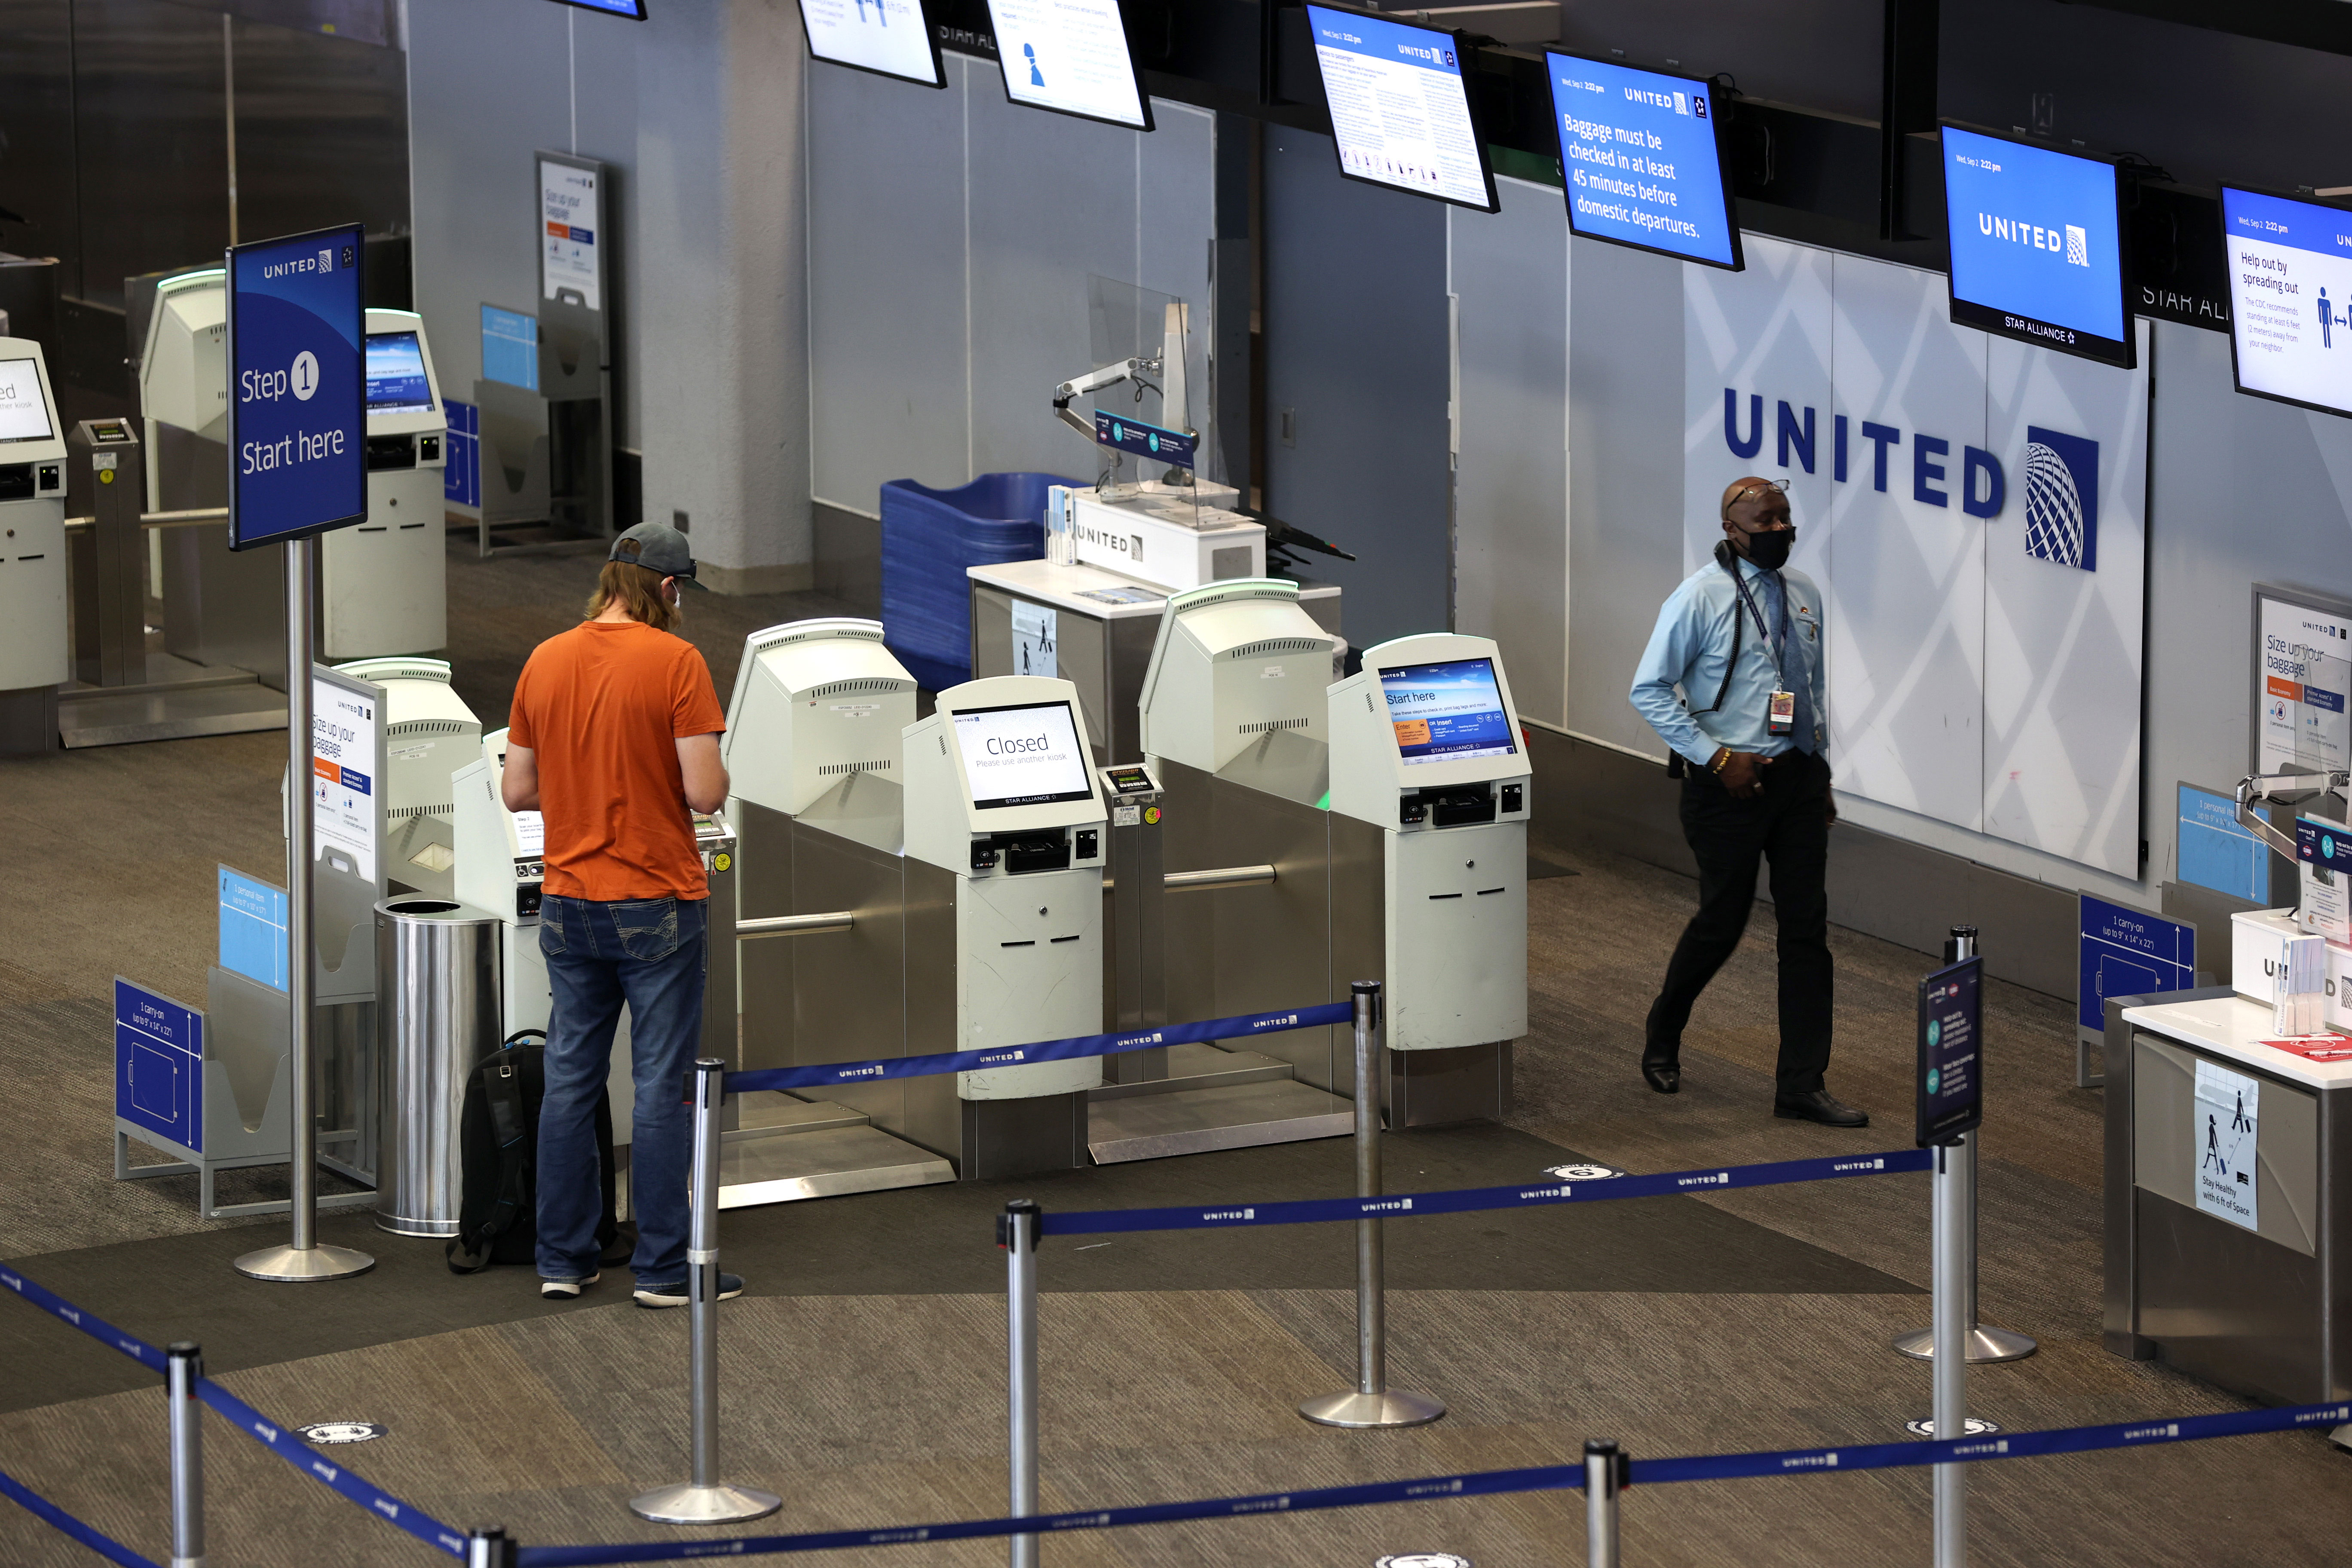 A United Airlines passenger checks in for a flight on September 2 at San Francisco International Airport in California.